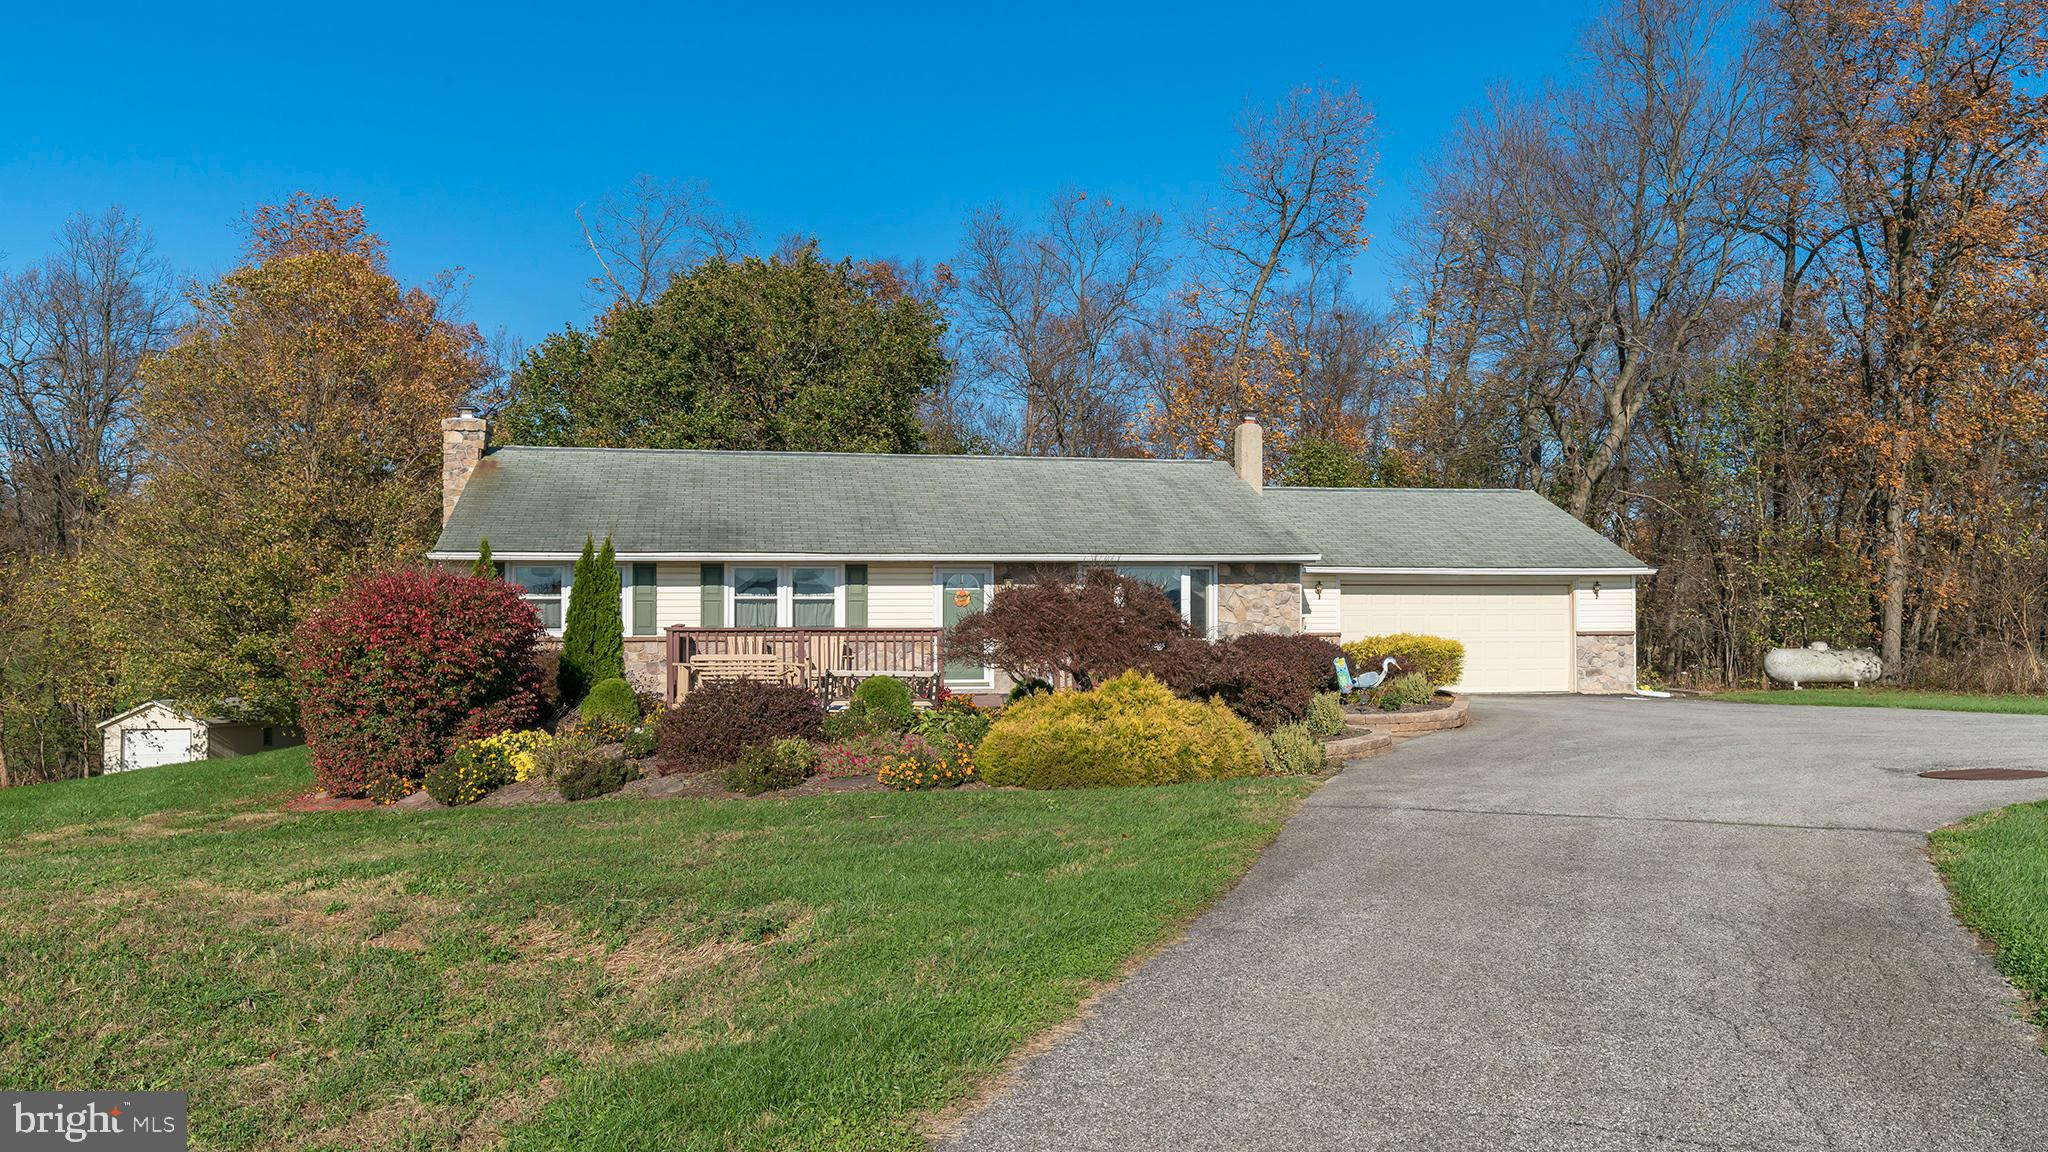 1001 FALLOWFIELD ROAD, ATGLEN, PA 19310